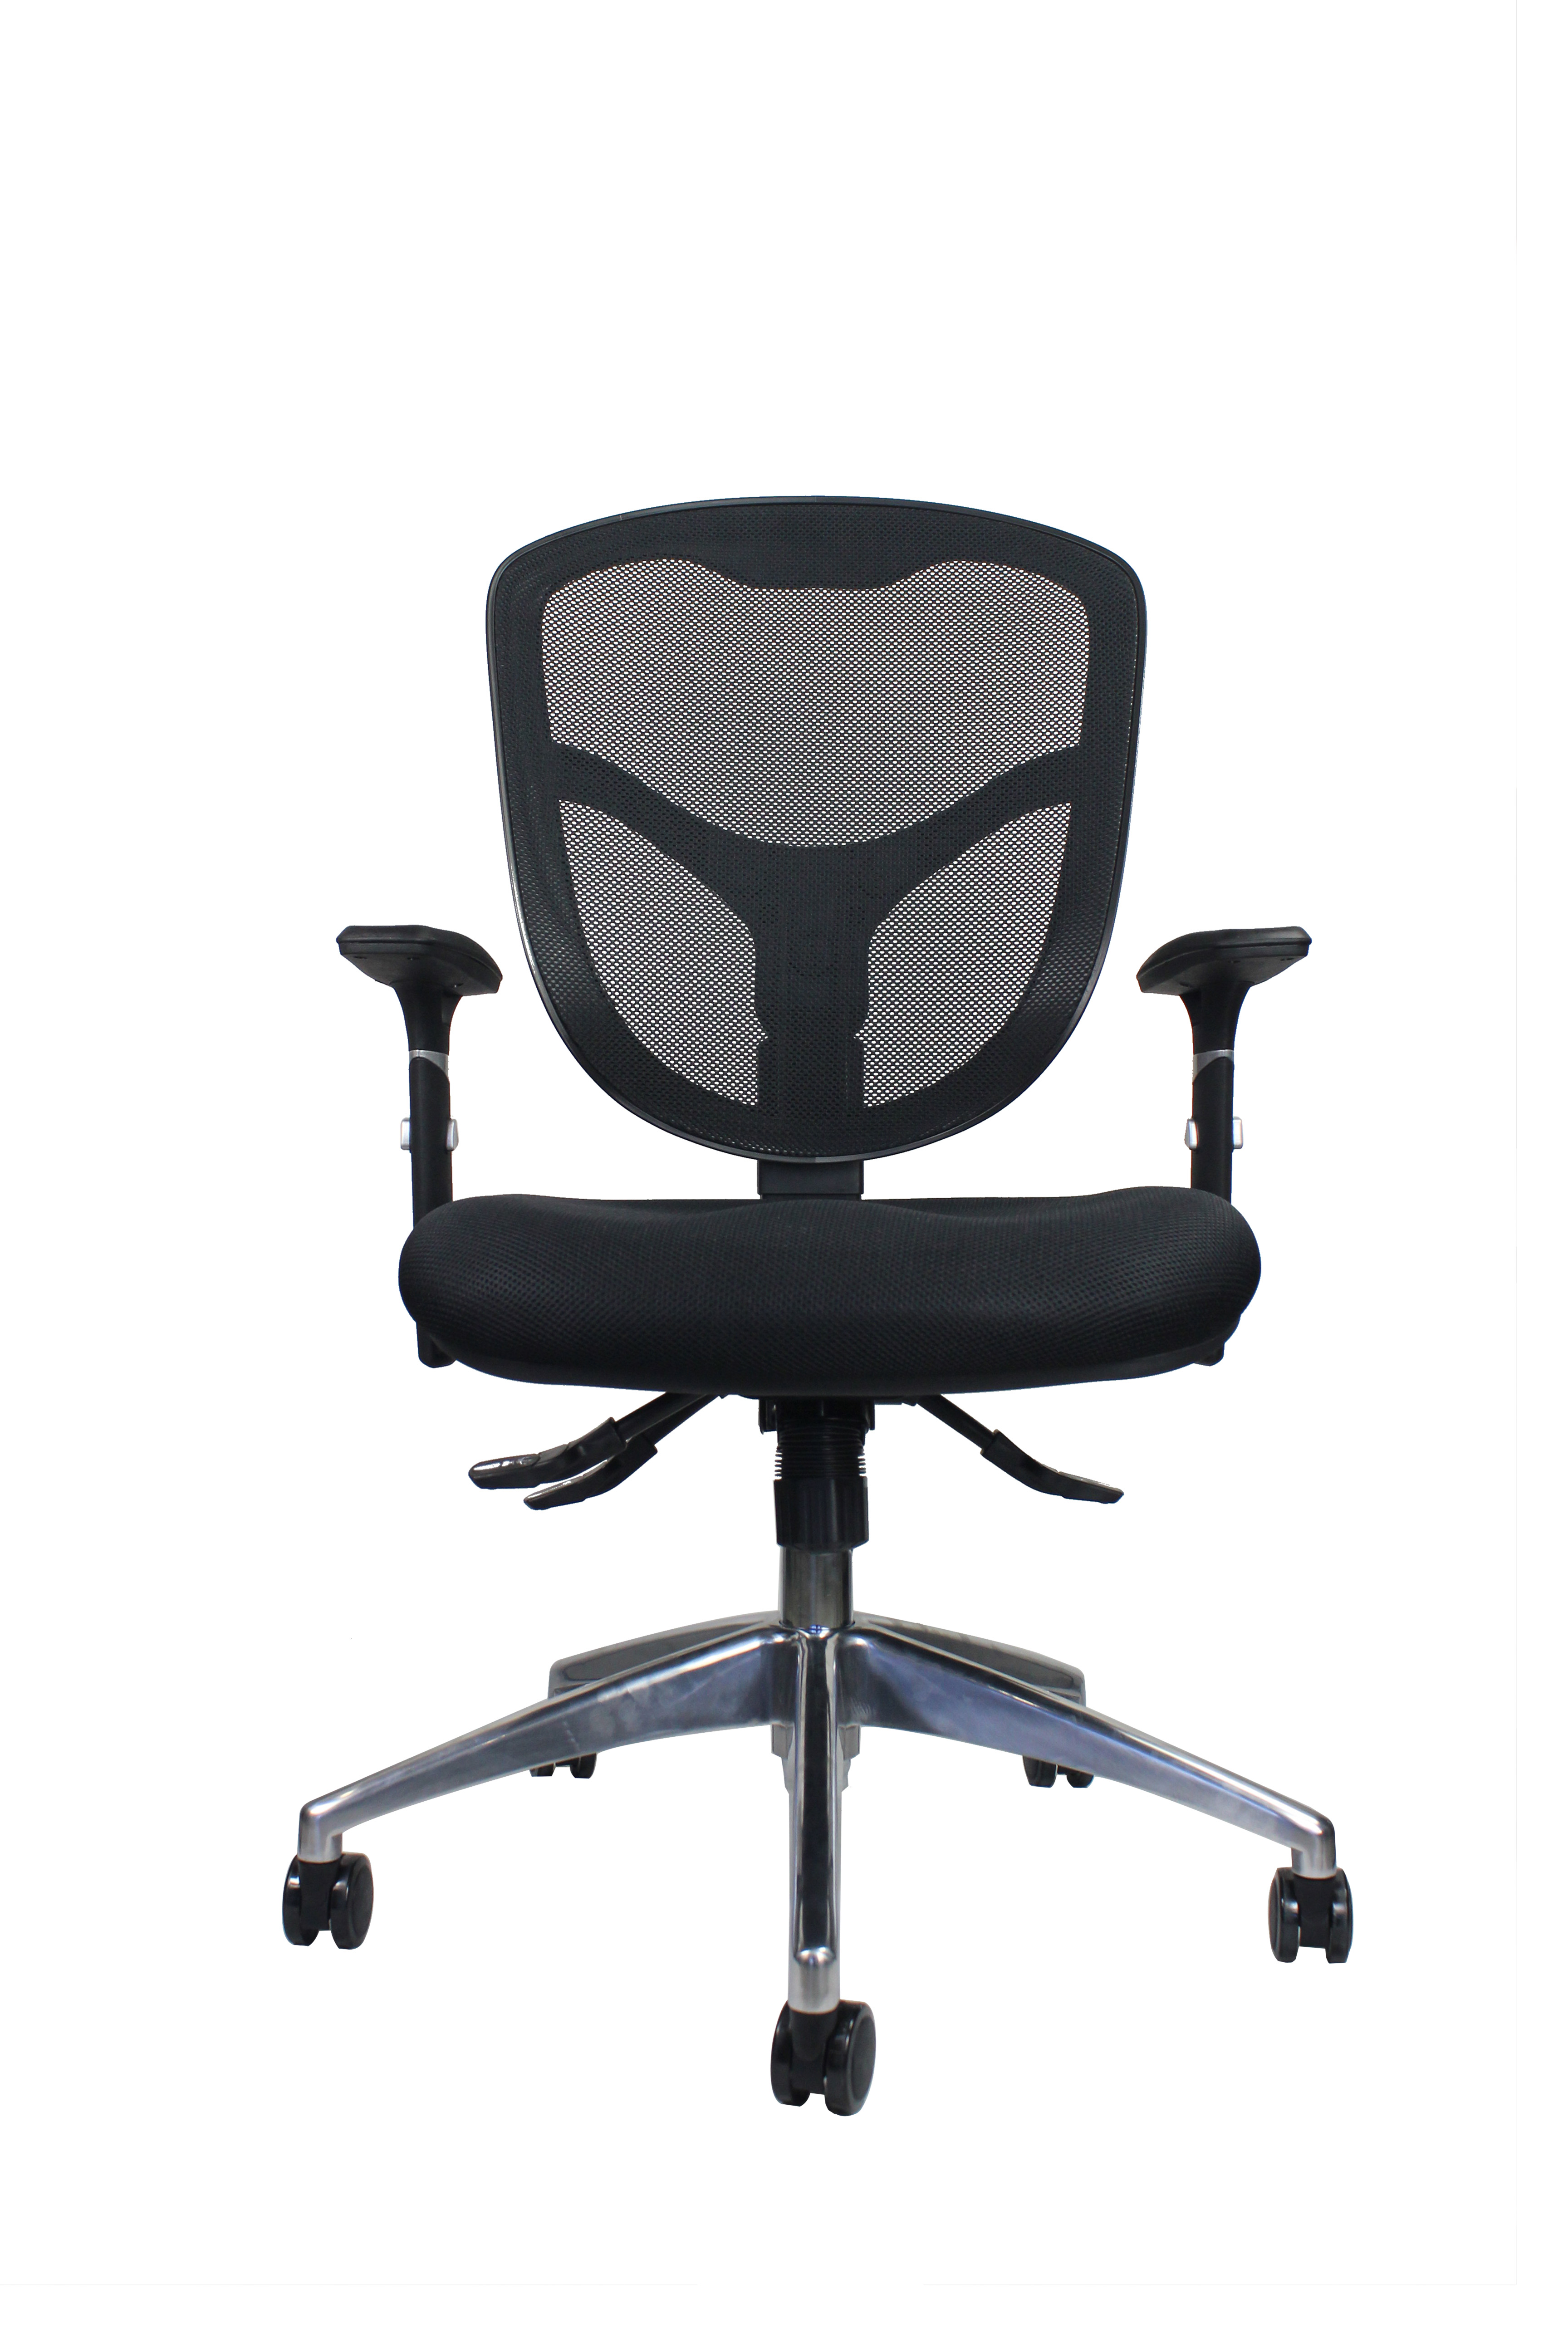 Ergonomic office chair sydney